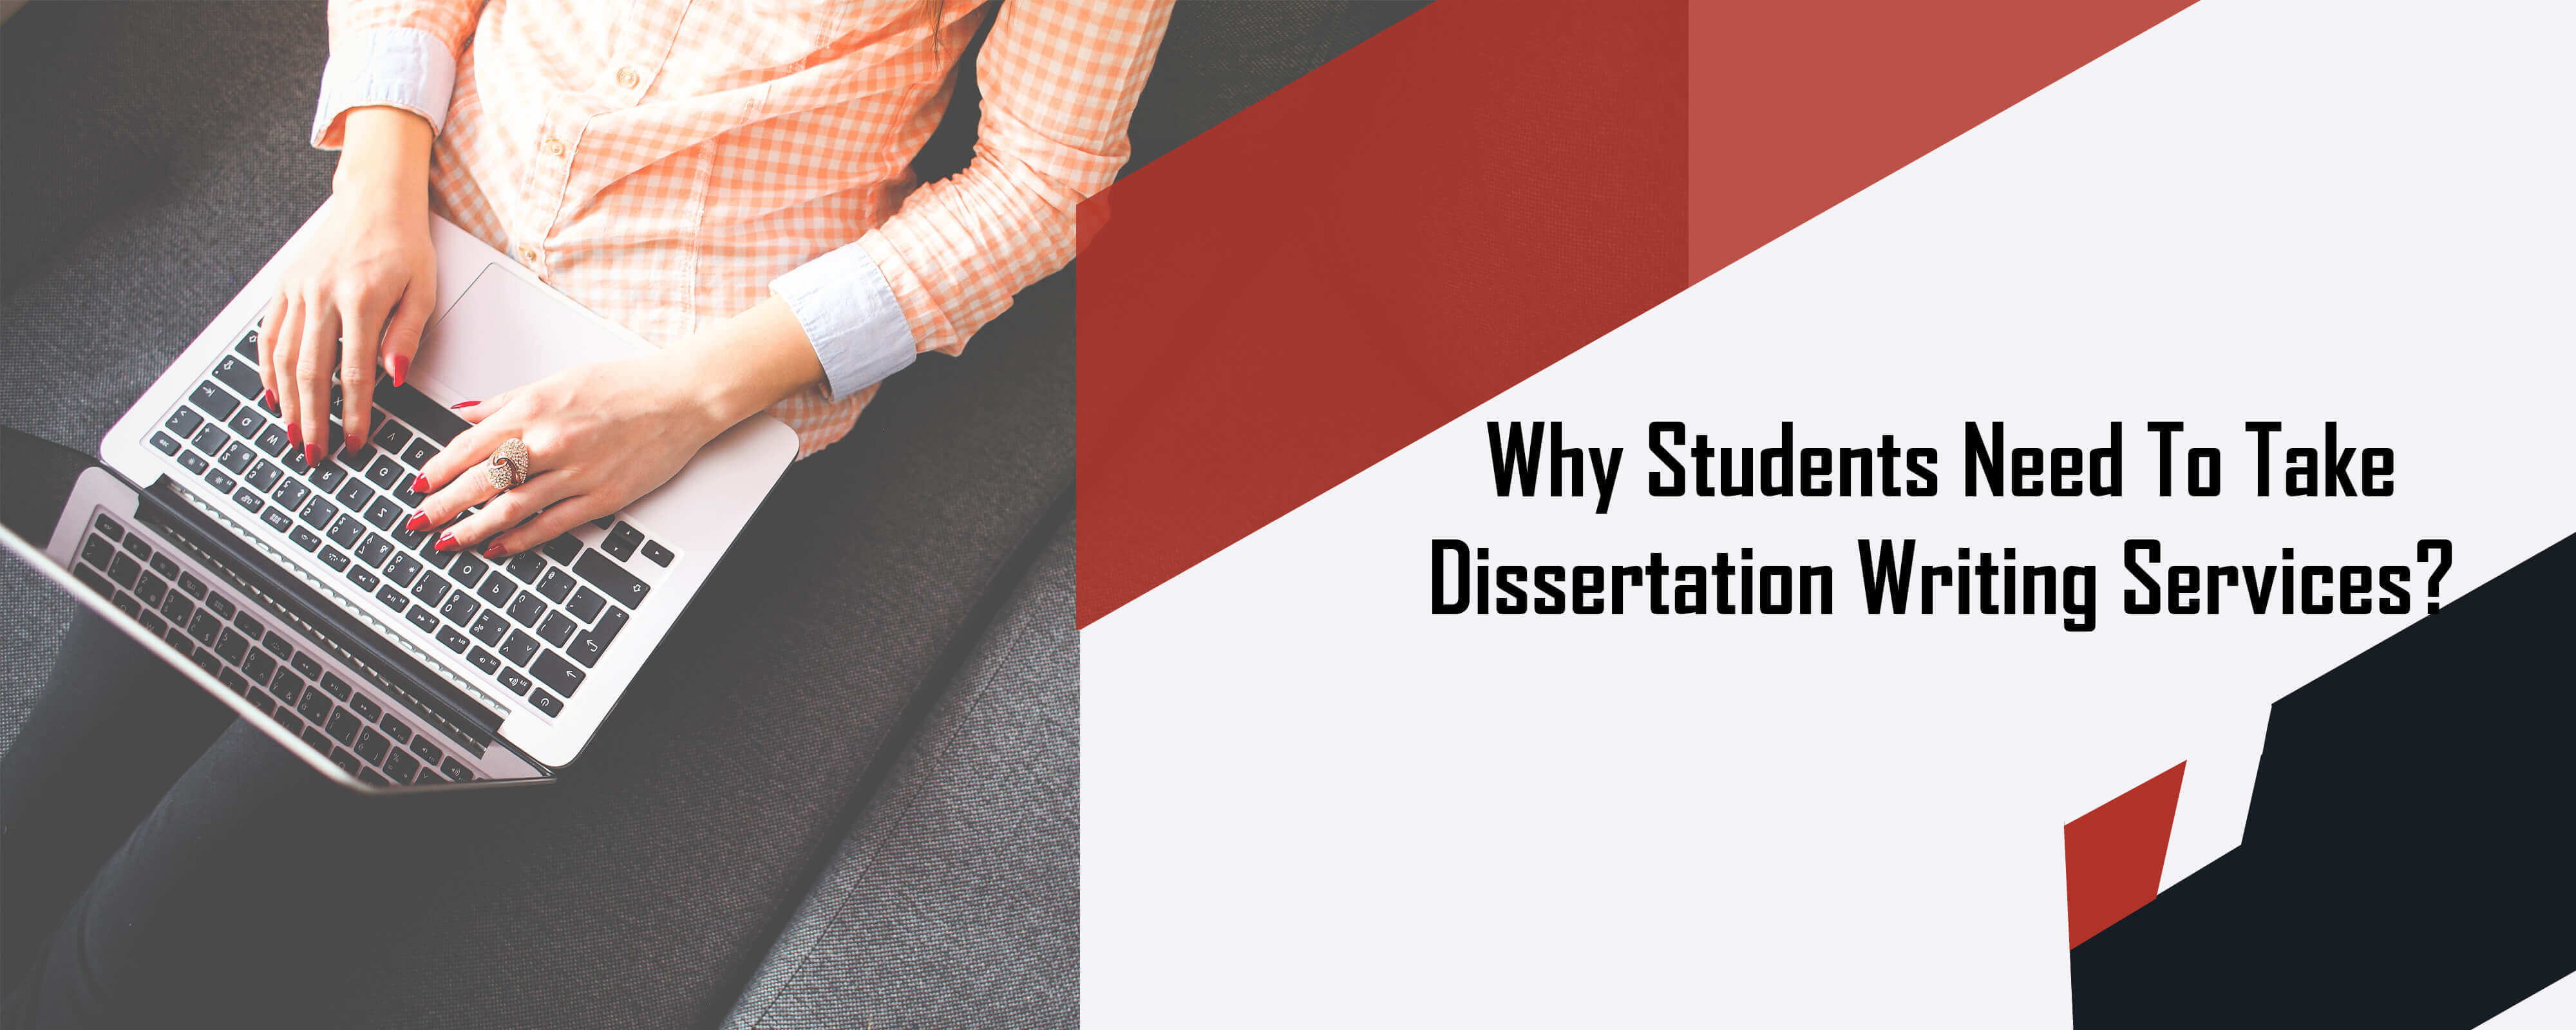 Why Students Need To Take Dissertation Writing Services, Dissertation Writing Services